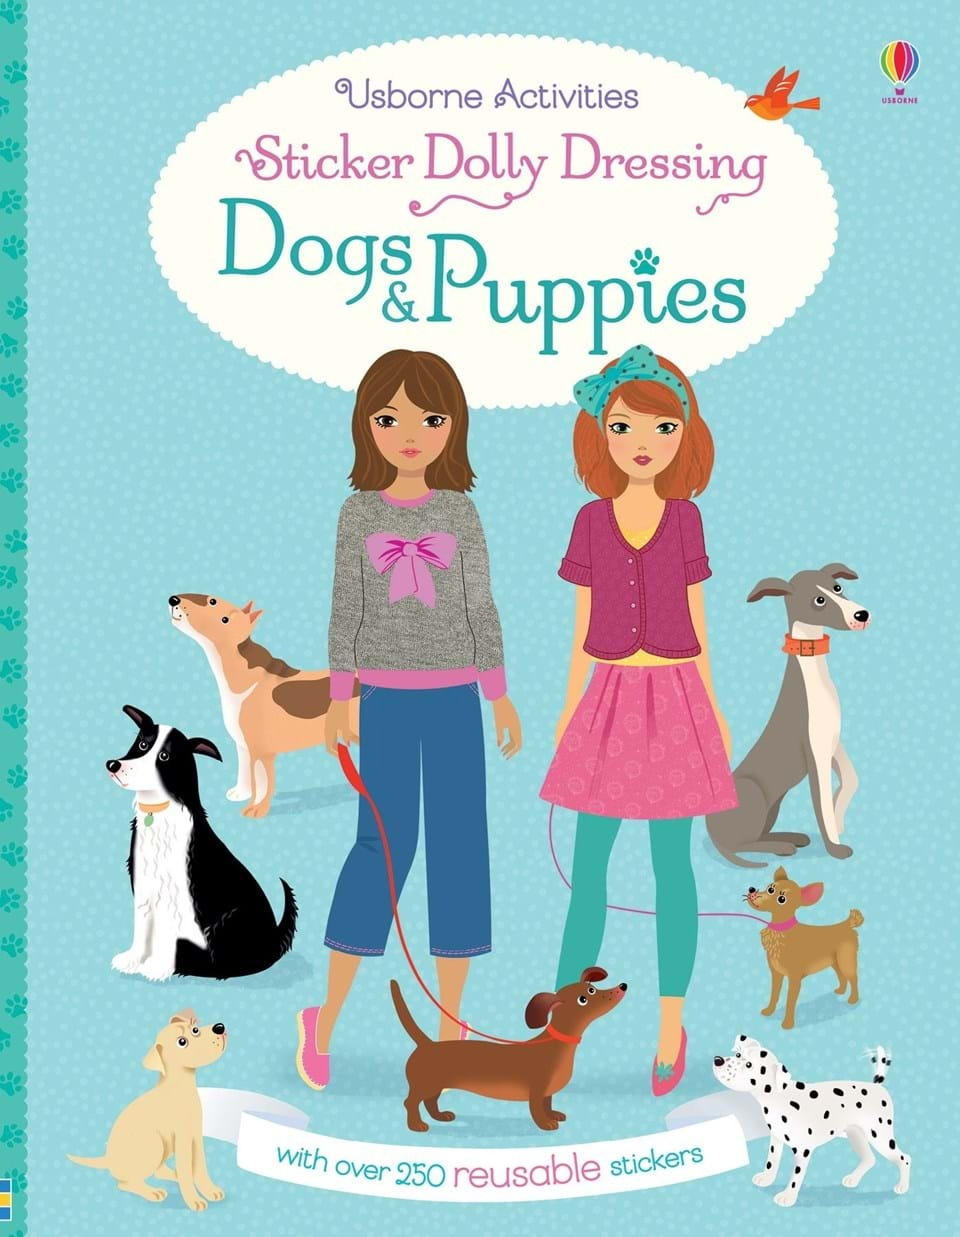 Dogs & Puppies Sticker Dolly Dressing